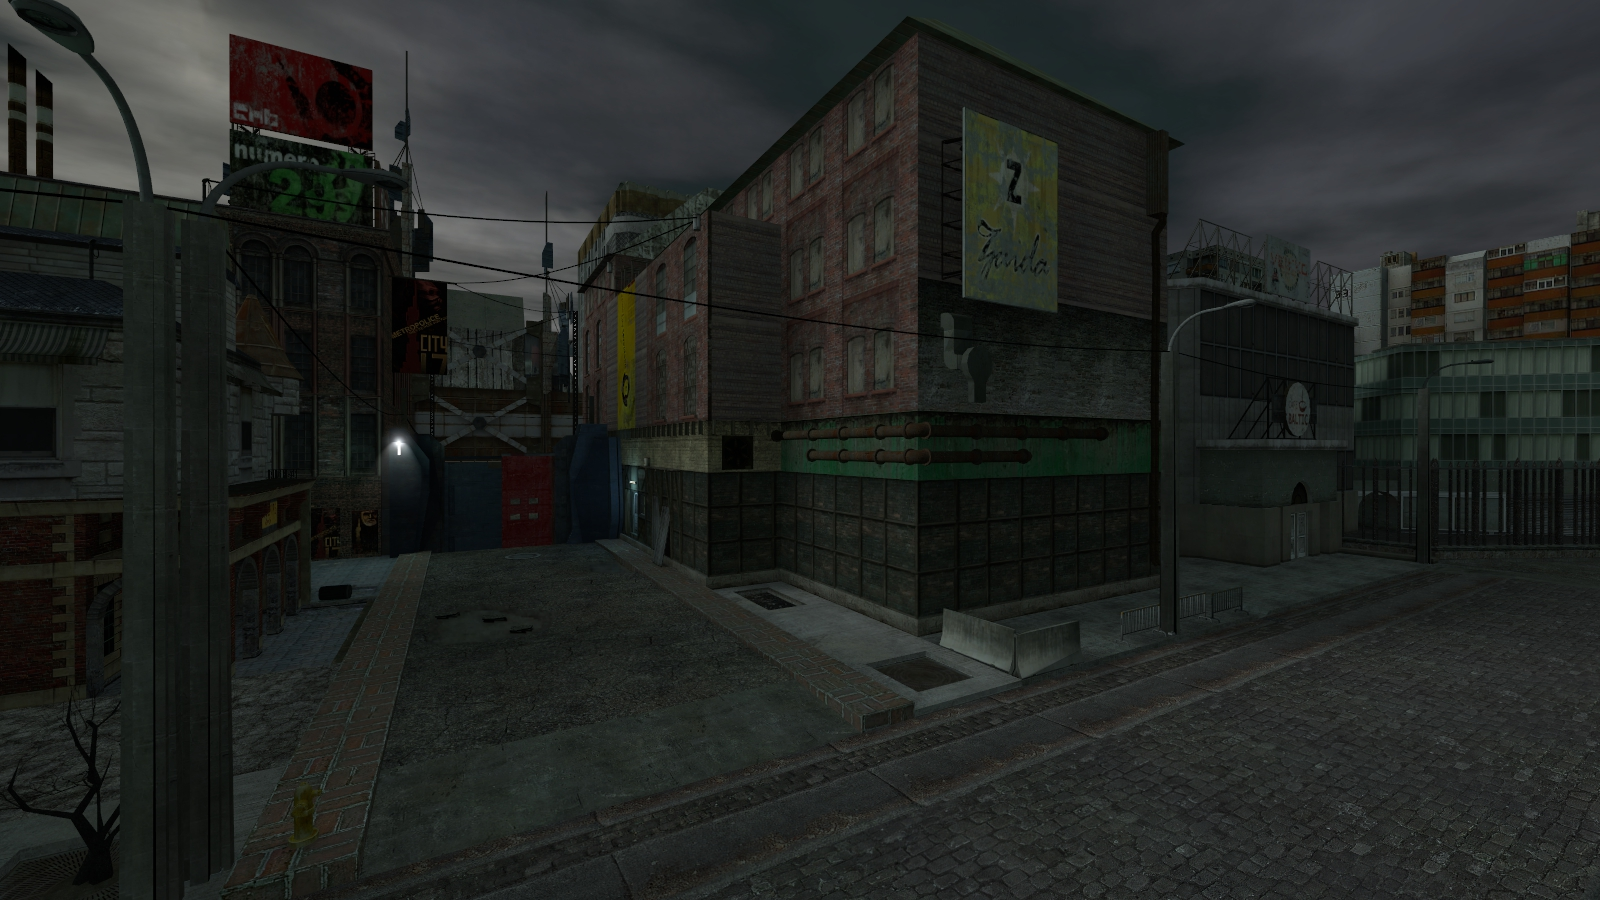 Half-Life 2. Dark Interval [MOD] - Half-Life 2 Арт, Мод